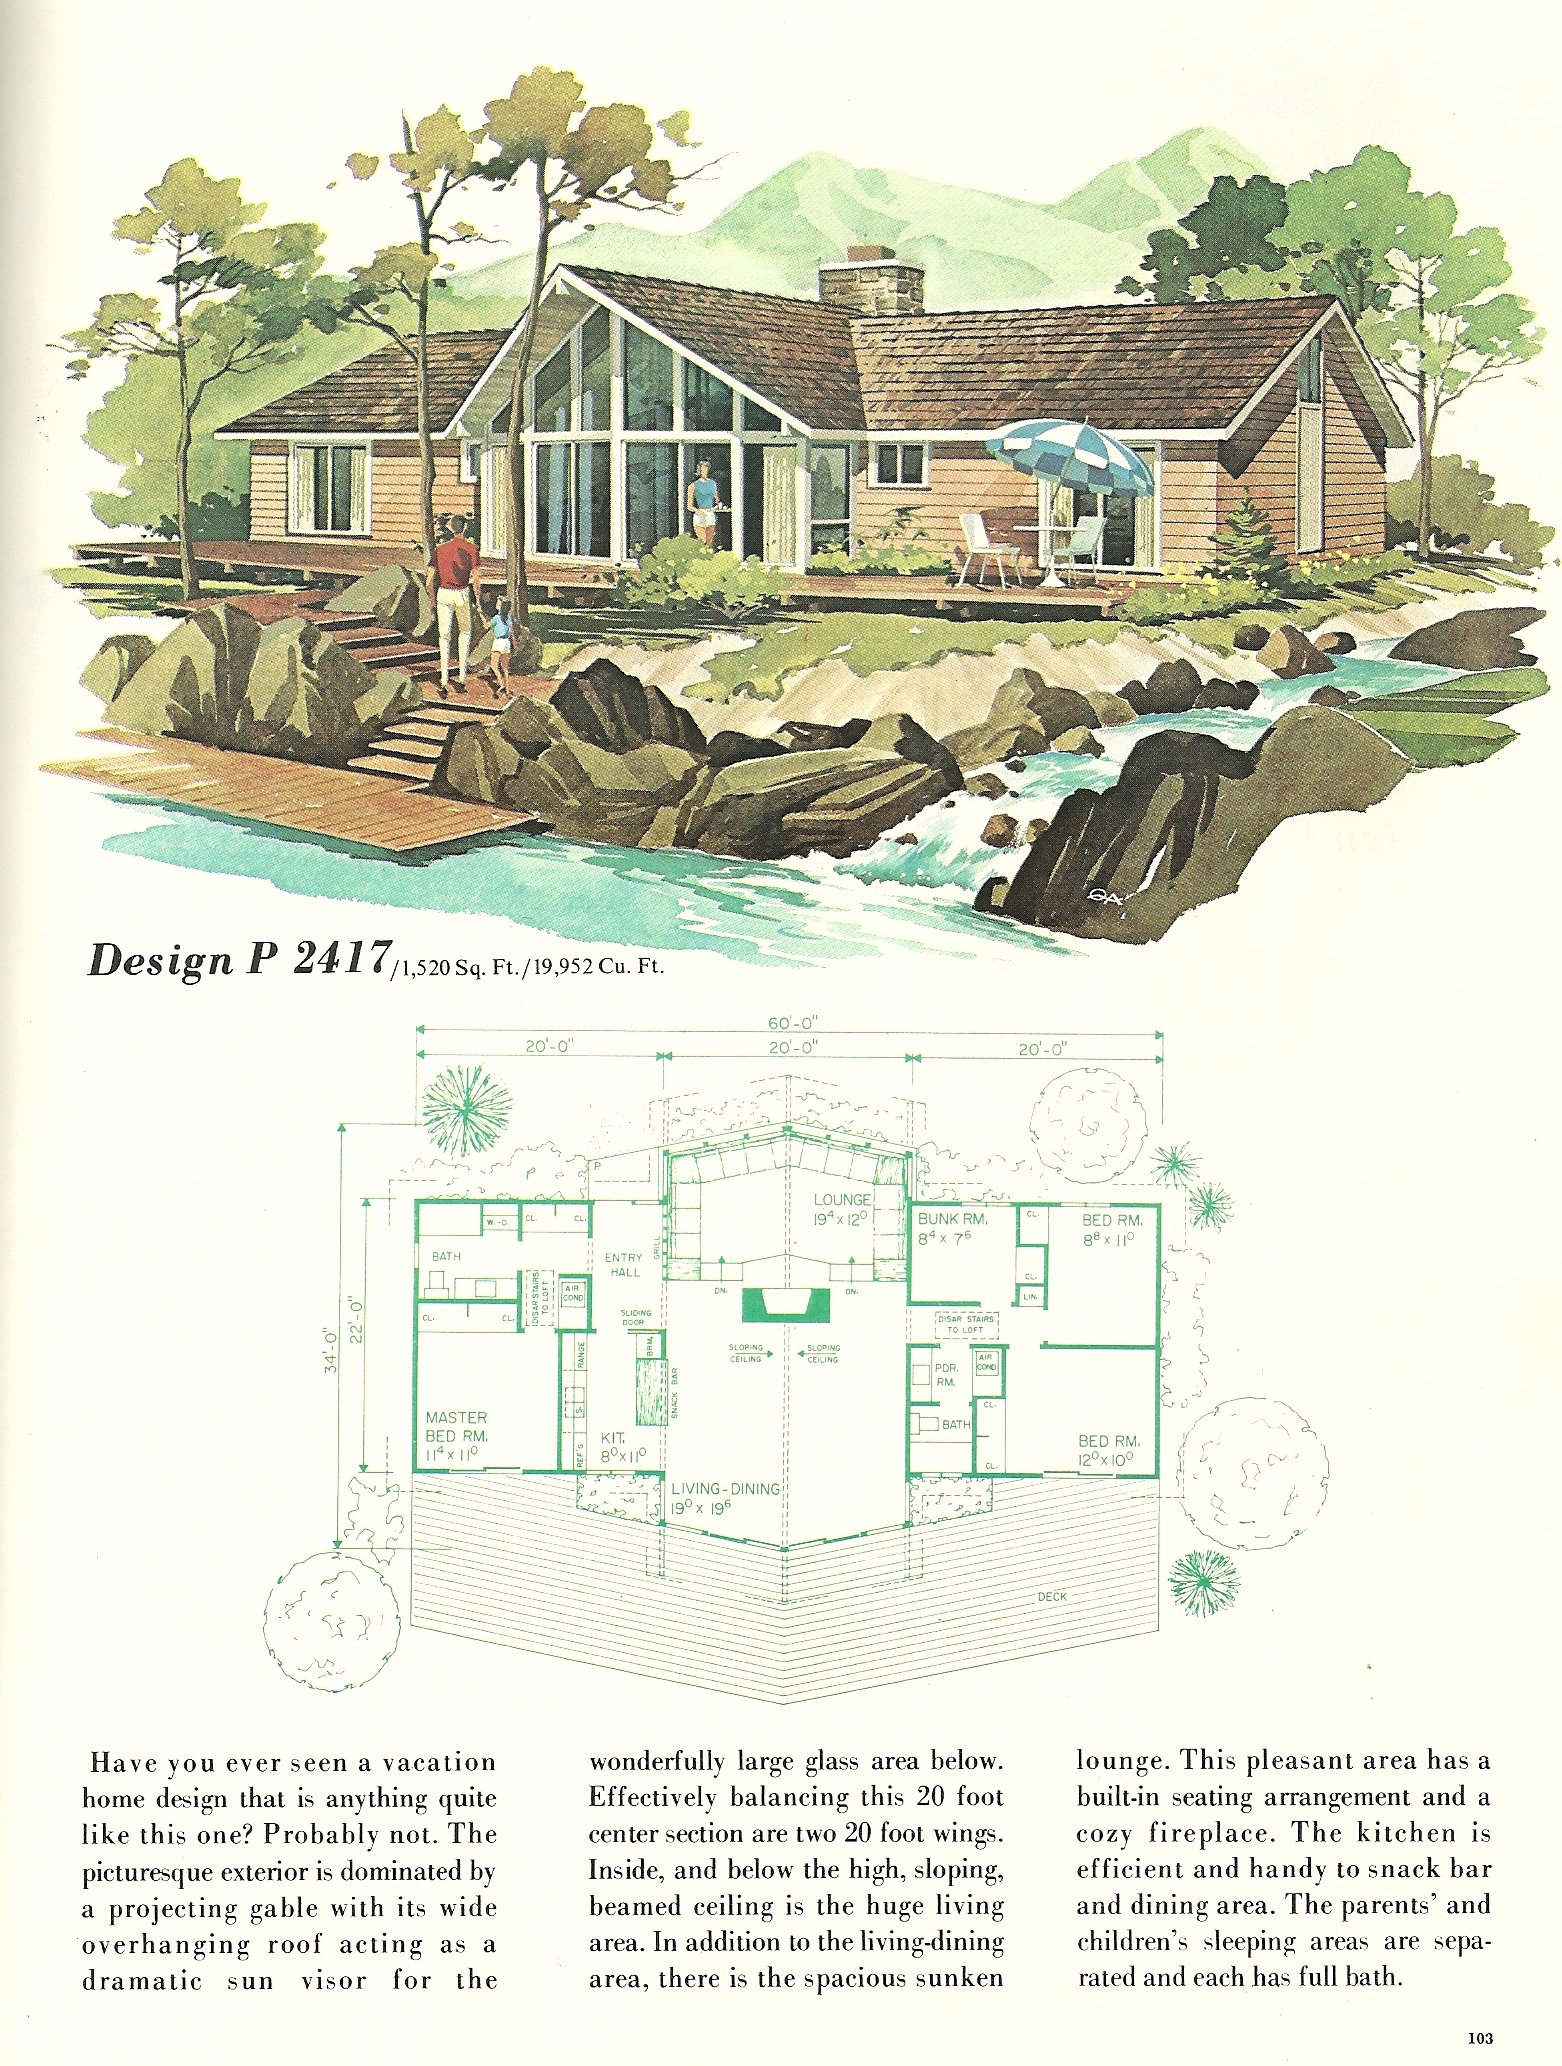 Vintage Vacation Home Plans 2417 Antique Alter Ego